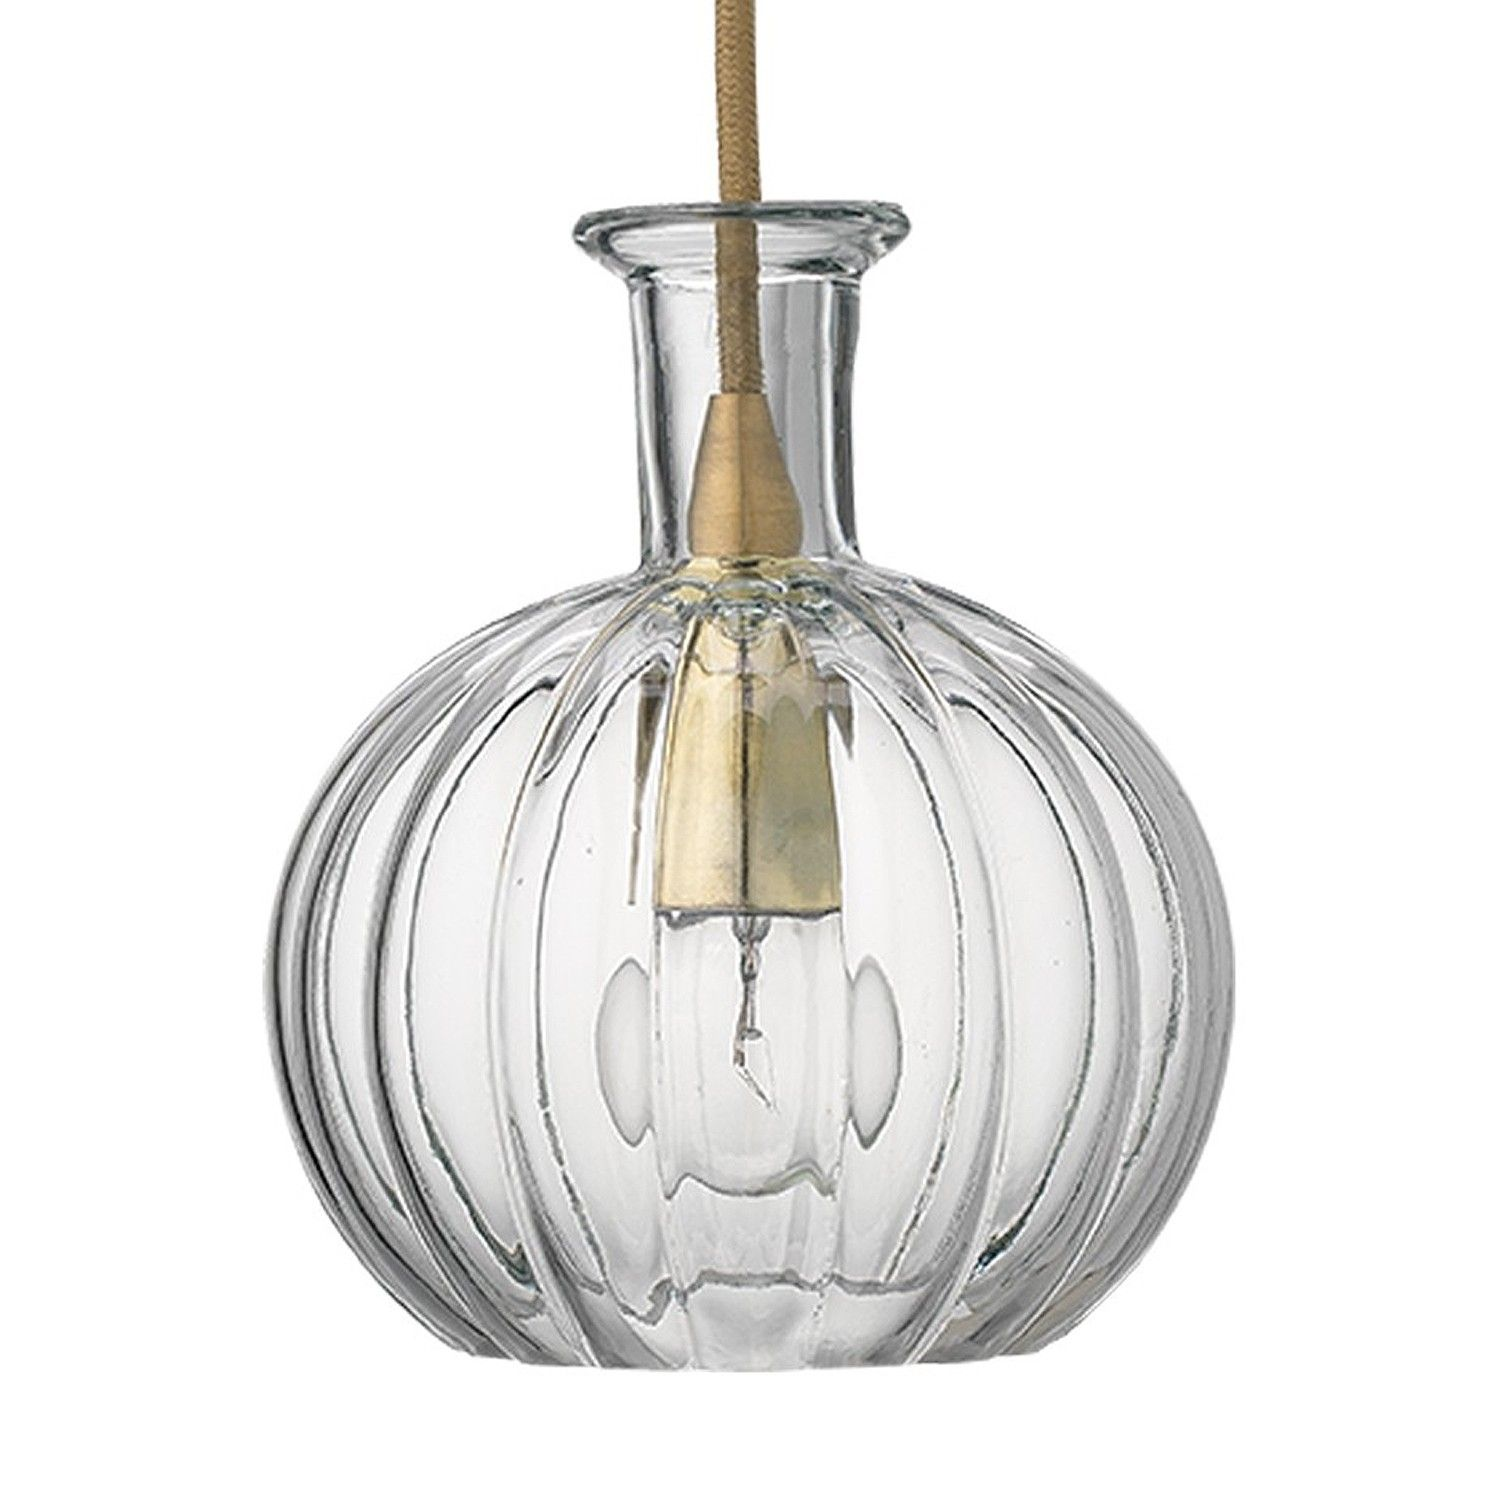 The sophia carafe pendant is part of the jamie young collection the sophia carafe pendant is part of the jamie young collection this collection is full aloadofball Image collections